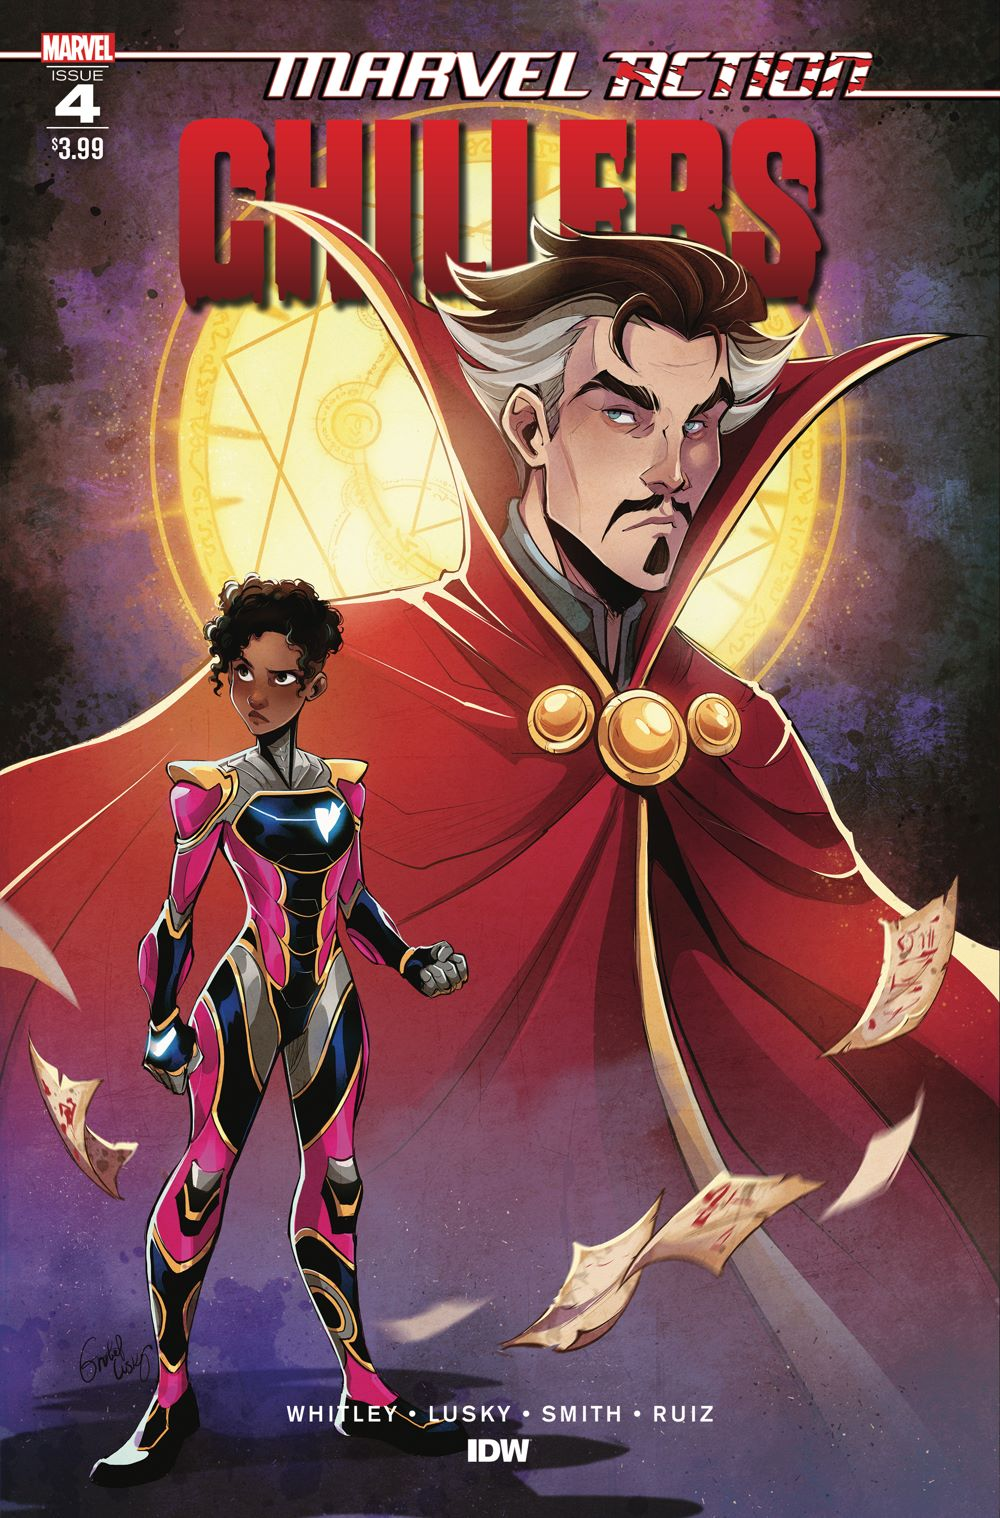 AvengersCHILLERS_04_CvrA ComicList: IDW Publishing New Releases for 02/03/2021